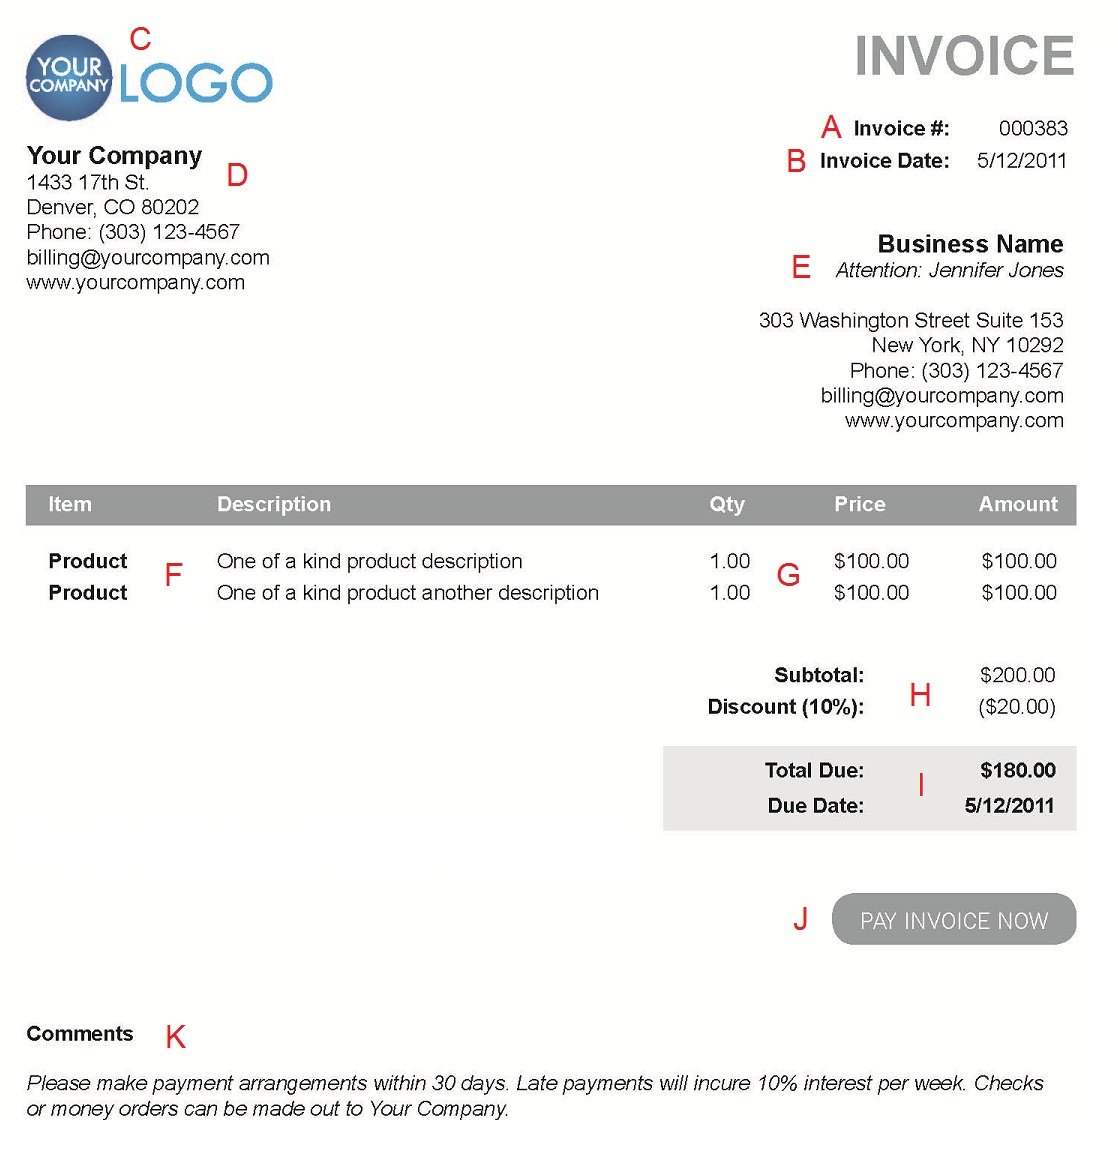 Angkajituus  Gorgeous The  Different Sections Of An Electronic Payment Invoice With Hot A  With Extraordinary Billing Invoice Format Also Rent A Car Invoice In Addition Psd Invoice Template And Invoice Template Maker As Well As Invoice Net Additionally Sage Invoice Template Download From Paysimplecom With Angkajituus  Hot The  Different Sections Of An Electronic Payment Invoice With Extraordinary A  And Gorgeous Billing Invoice Format Also Rent A Car Invoice In Addition Psd Invoice Template From Paysimplecom